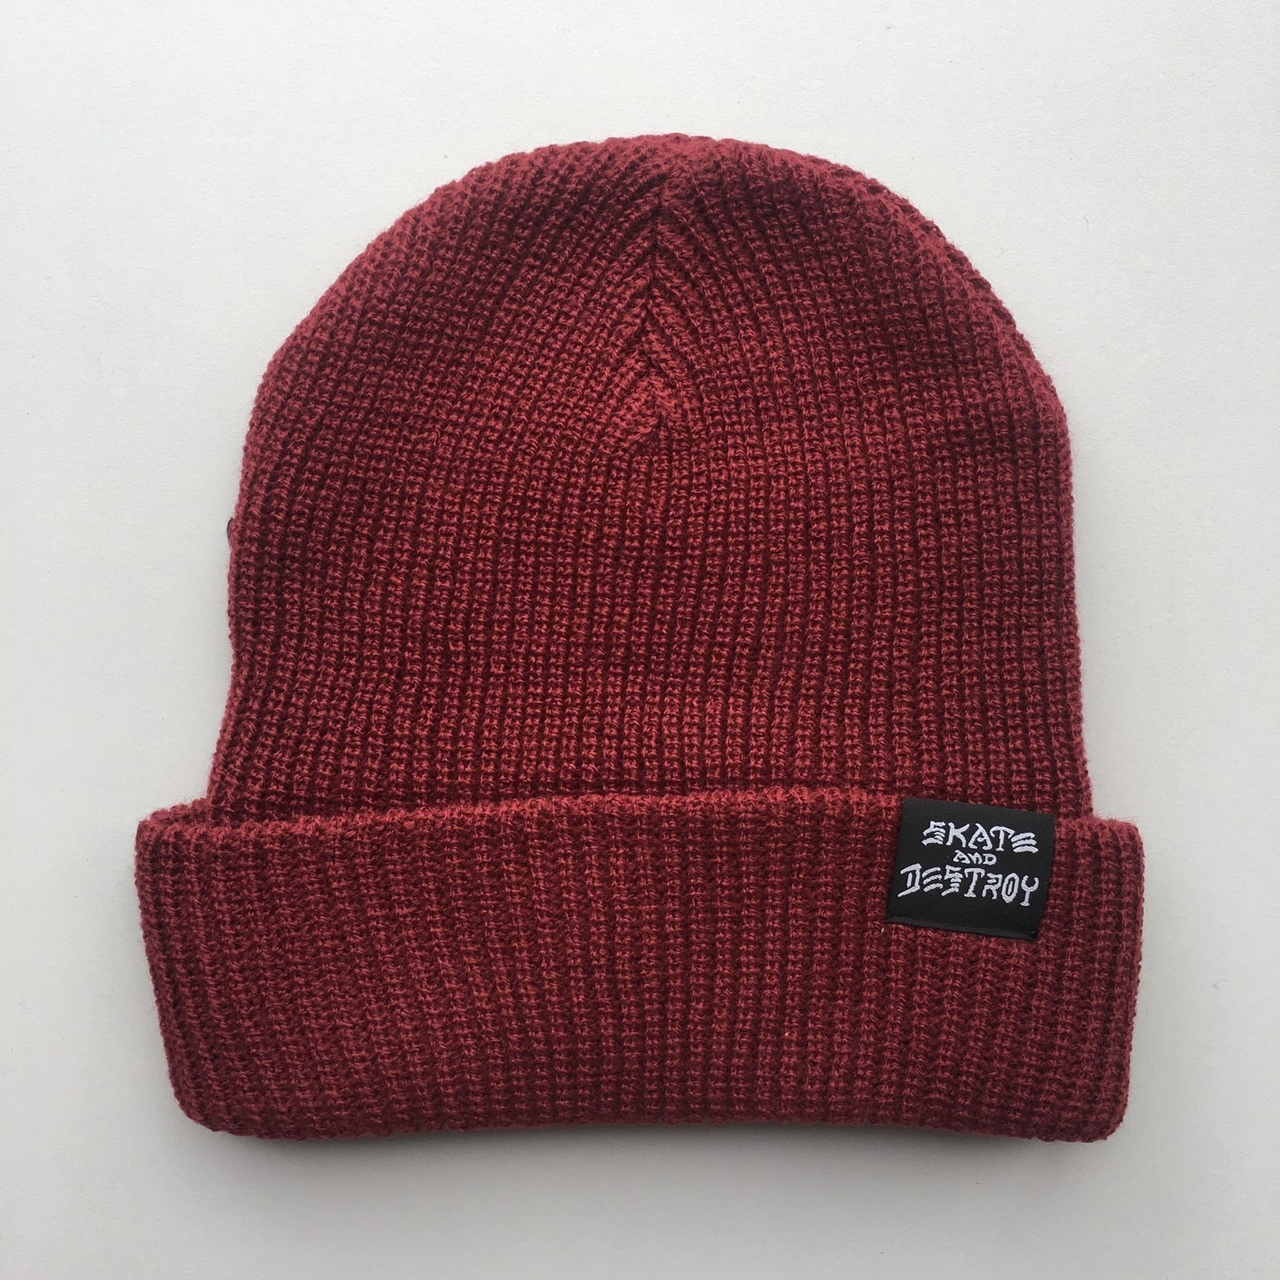 Шапка Thrasher Skate and Destroy Knit Beanie Maroon